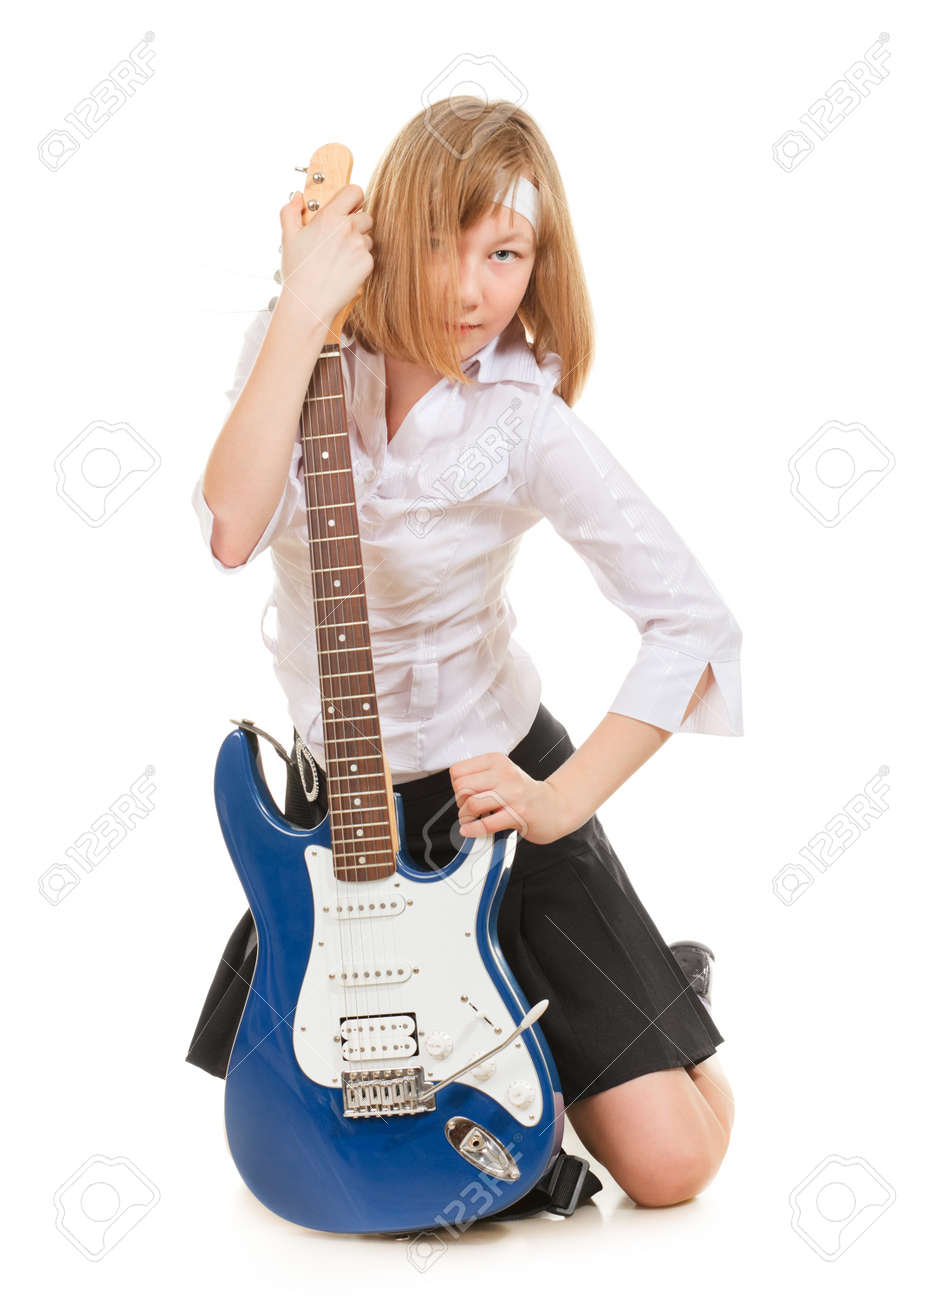 teen girl playing on a guitar, isolated on white Stock Photo - 9782802